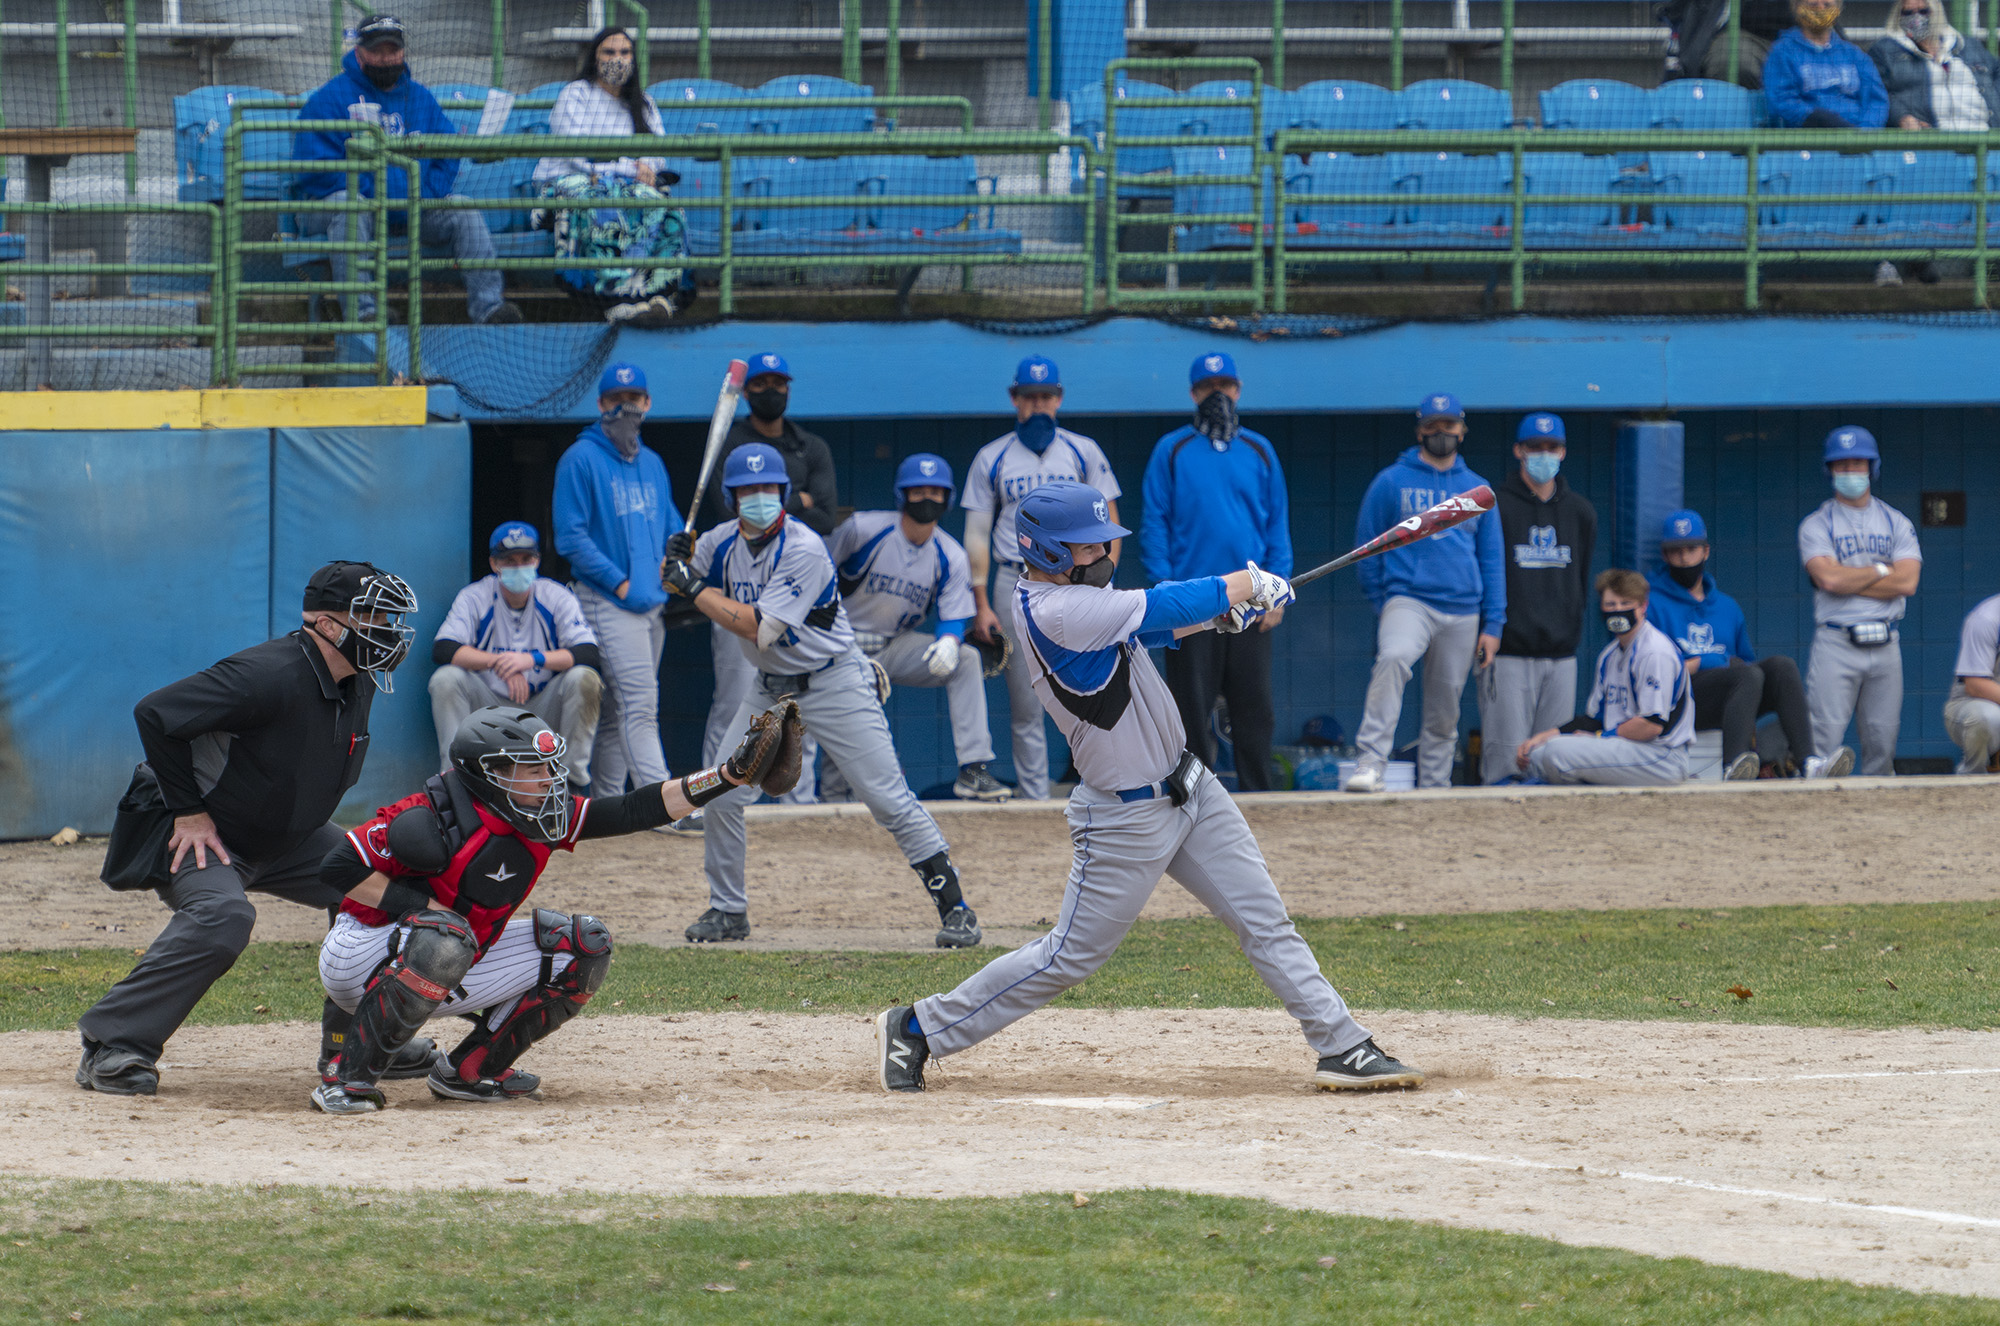 A KCC batter hits the ball as the team watches from the dugout.